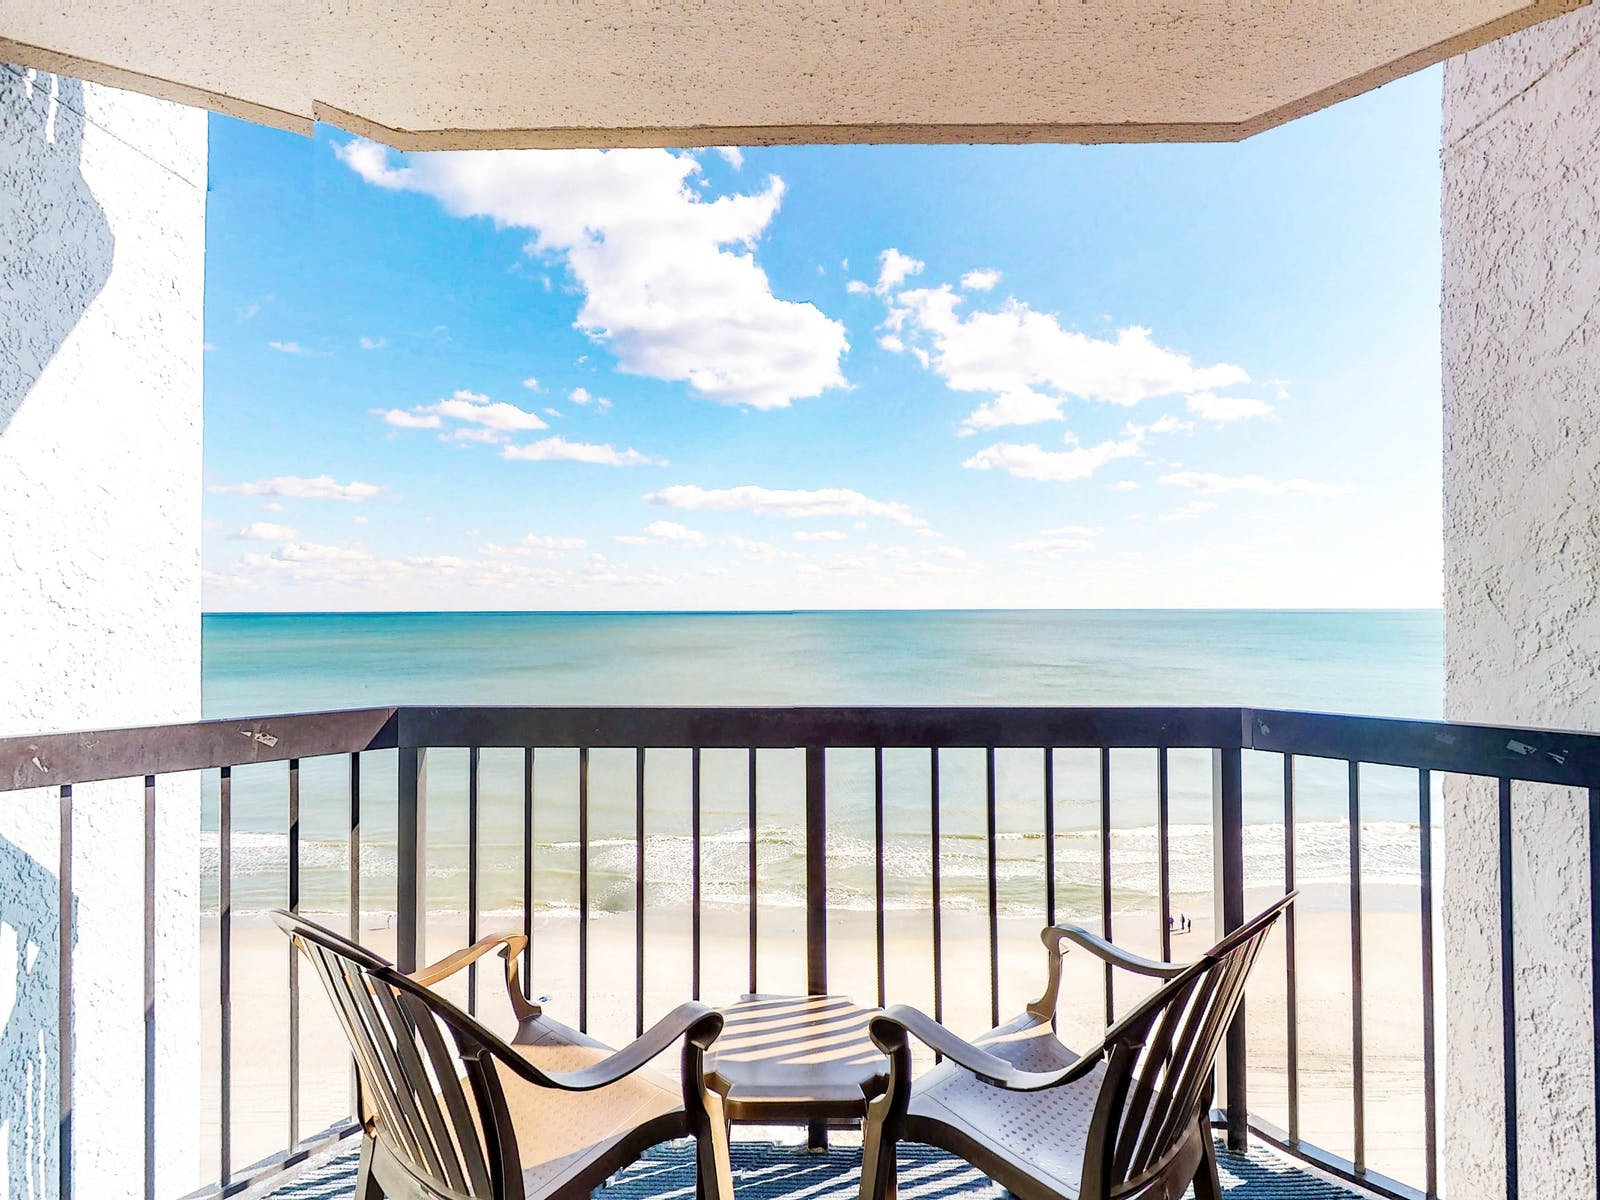 View of beach from Myrtle Beach vacation home rental balcony